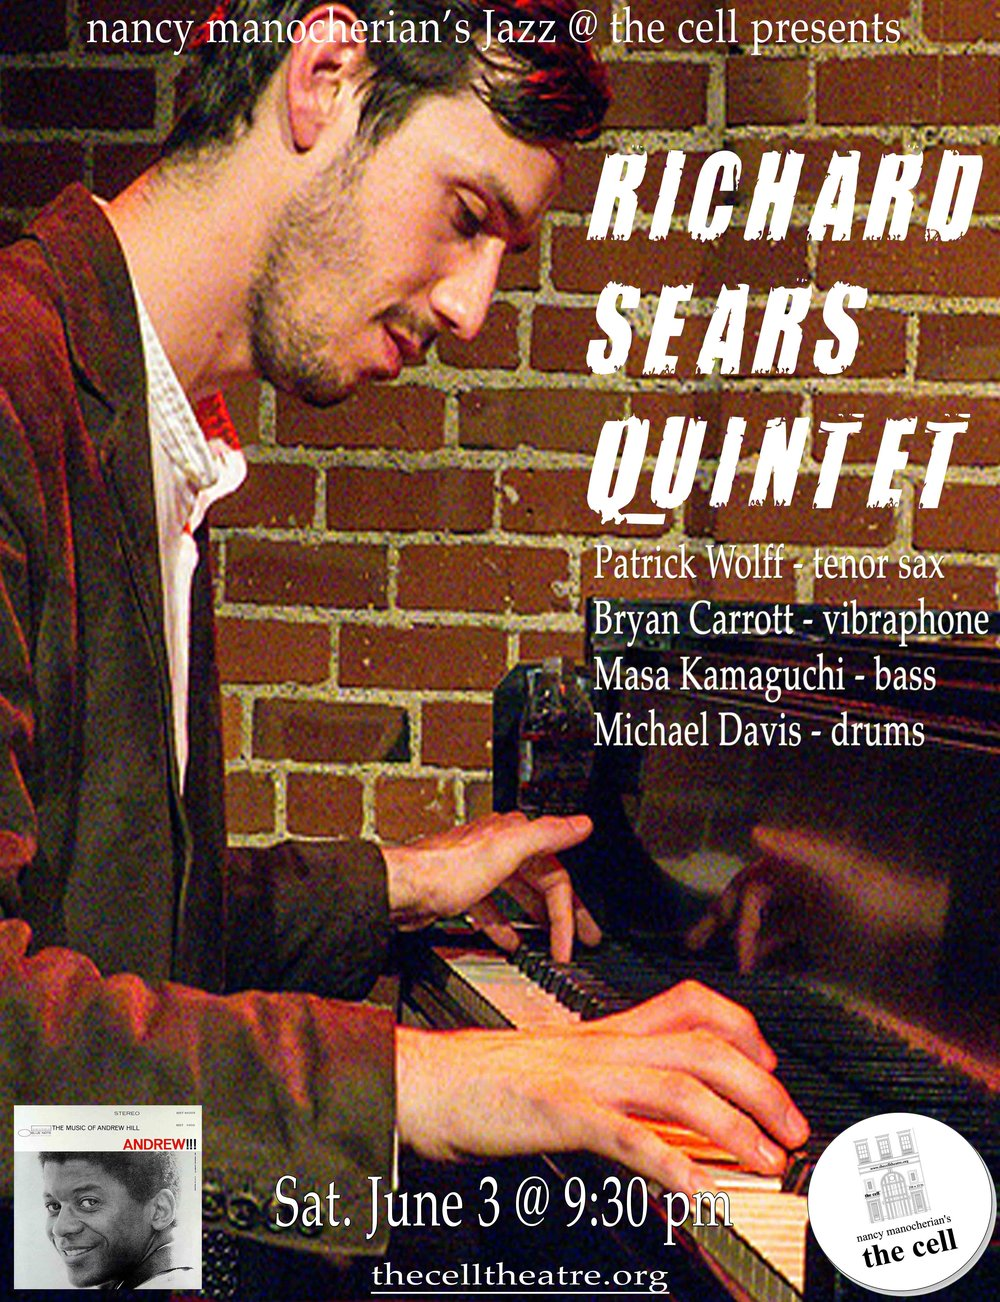 "Pianist Richard Sears possesses an original voice as an improvisor and composer. His composition has been recognized by grants from the Aaron Copland Fund and the Los Angeles Jazz Society. As a performer, Richard has appeared with the likes of Chick Corea, Mark Turner, Muhal Richard Abrams, Joshua Redman, and Billy Hart.  His most recent release, Altadena, features the legendary drummer, Albert Tootie Heath performing with Richards sextet. Altadena earned 4 stars in Downbeat Magazine, and was named one of 2016s best release by AllAboutJazz. This performance will feature original compositions, as well as selections from Andrew!!!, the landmark recording by pianist and composer, Andrew Hill. ""Much in the way classic hard bop married uptempo and soulful grooves, Sears' [quintet] runs with a modern sound but gives it all the energy and heart of the musical past."" -David Sumner, BandCamp Daily"